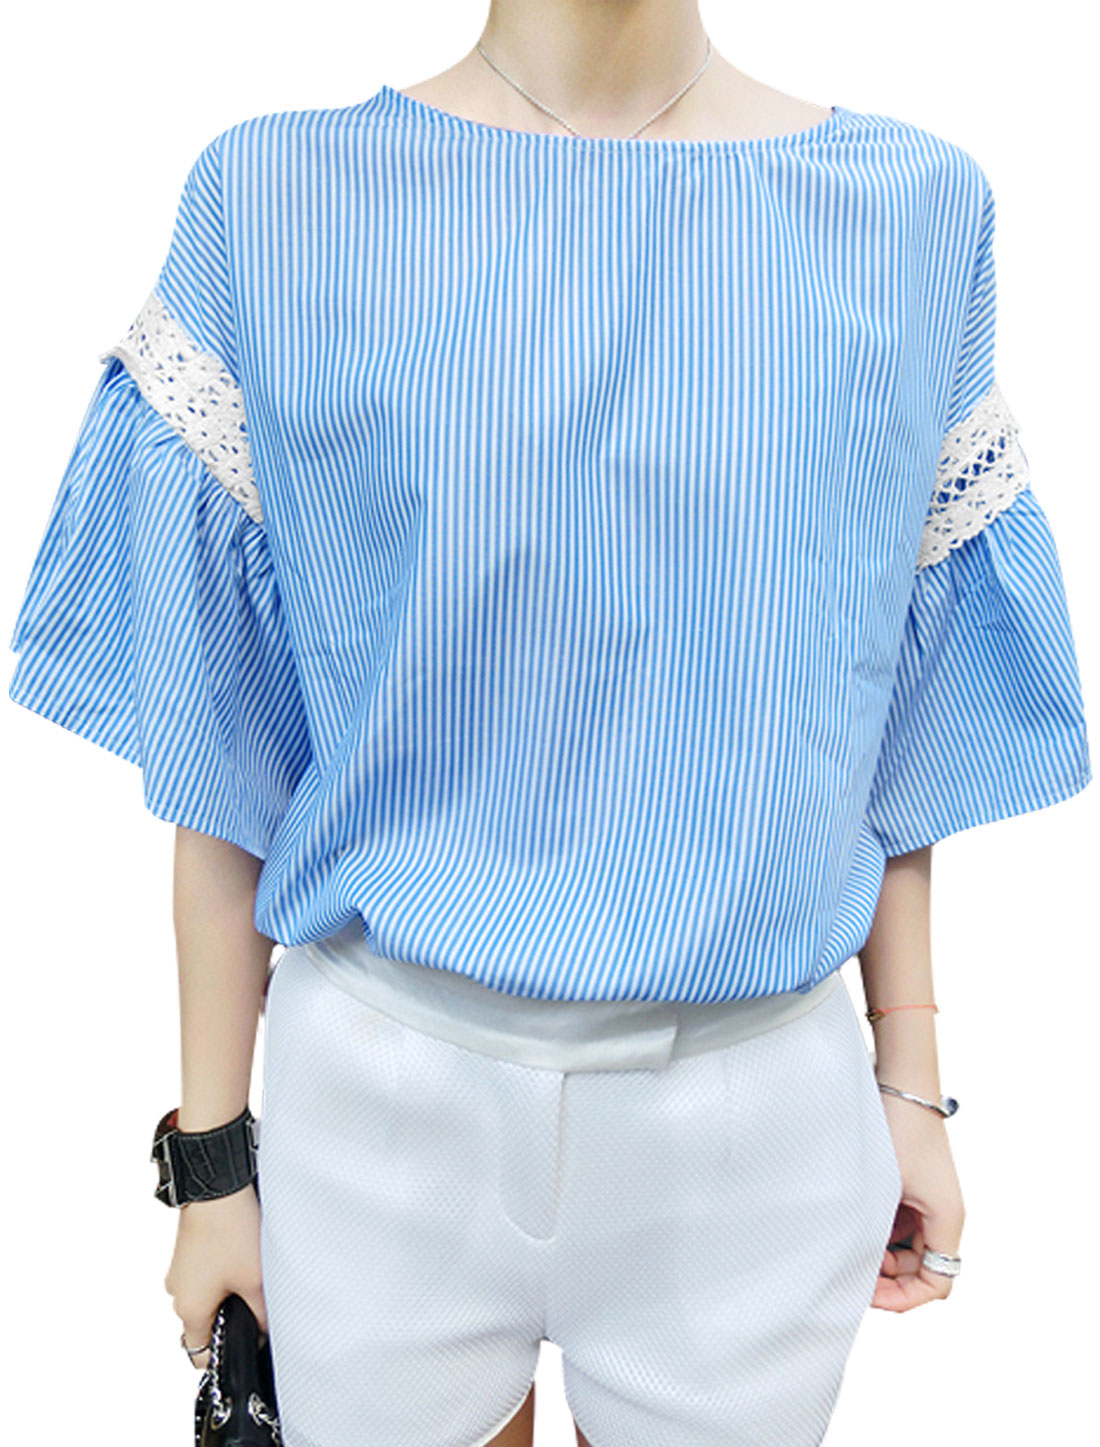 Lady Round Neck Half Trumpet Sleeve Crochet Patchwork Stripes Loose Top Blue XS